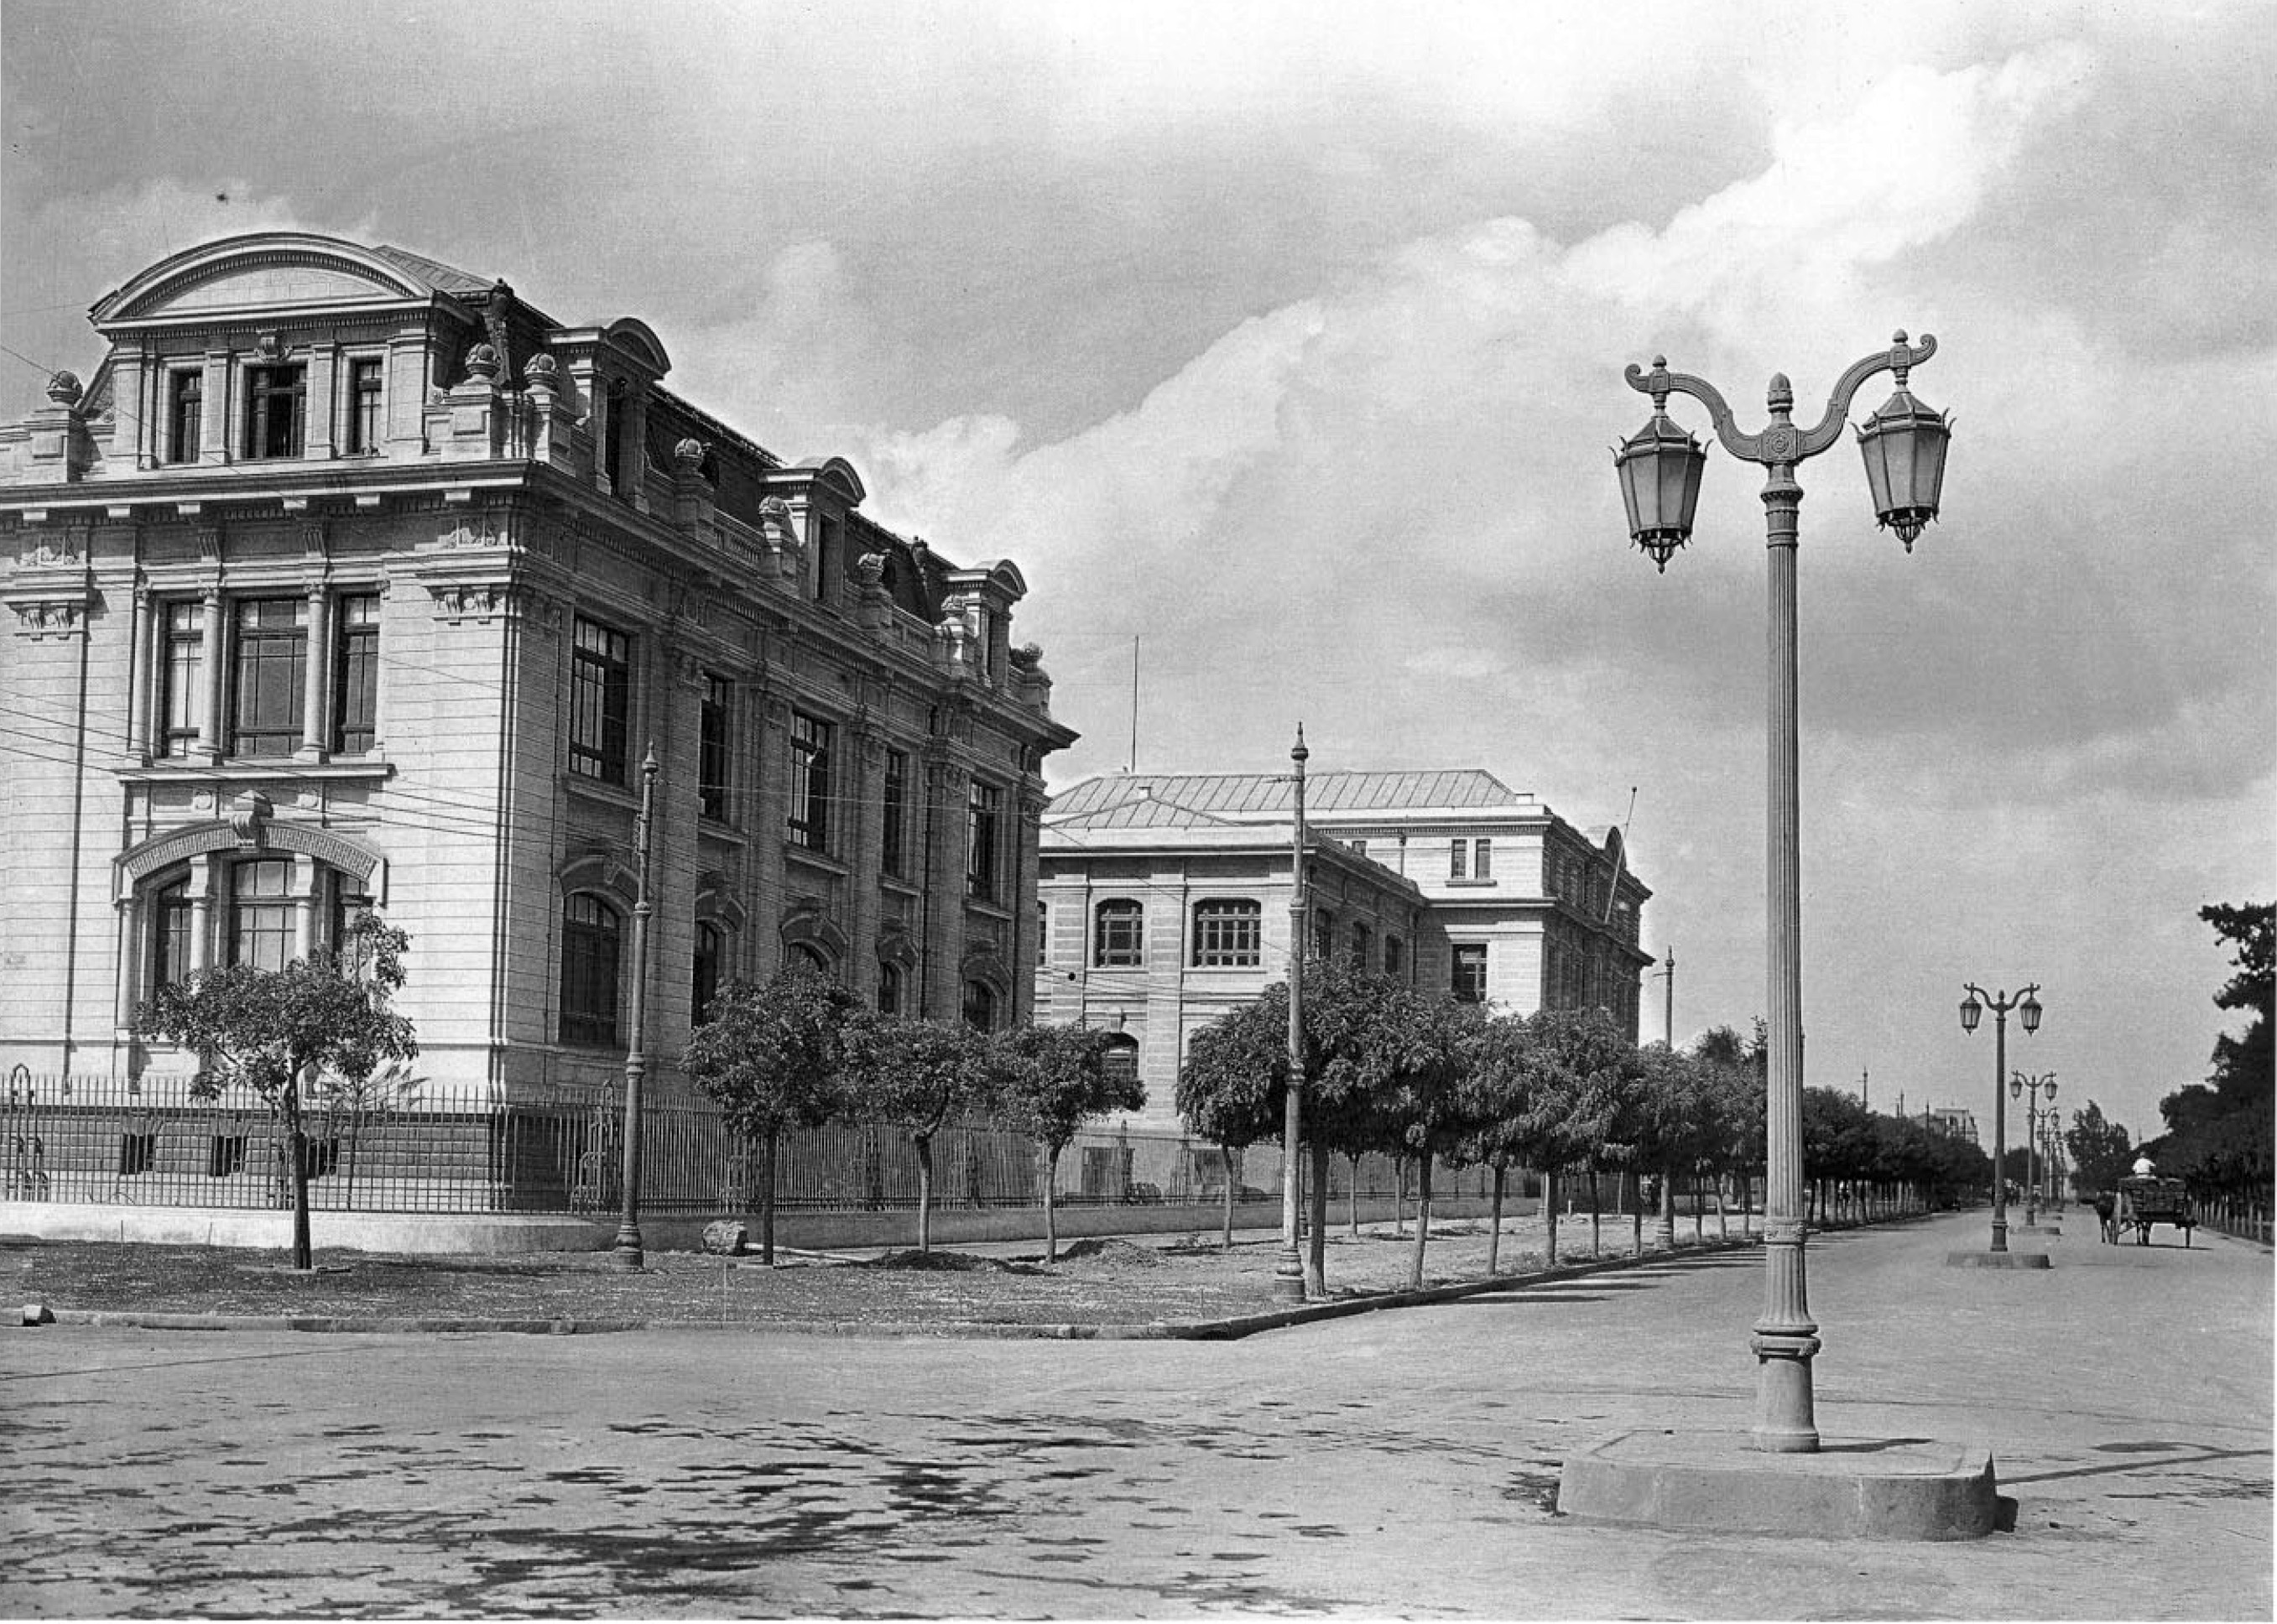 Enterreno - Fotos históricas de chile - fotos antiguas de Chile - Escuela de Ingeniería de la Universidad de Chile, 1930